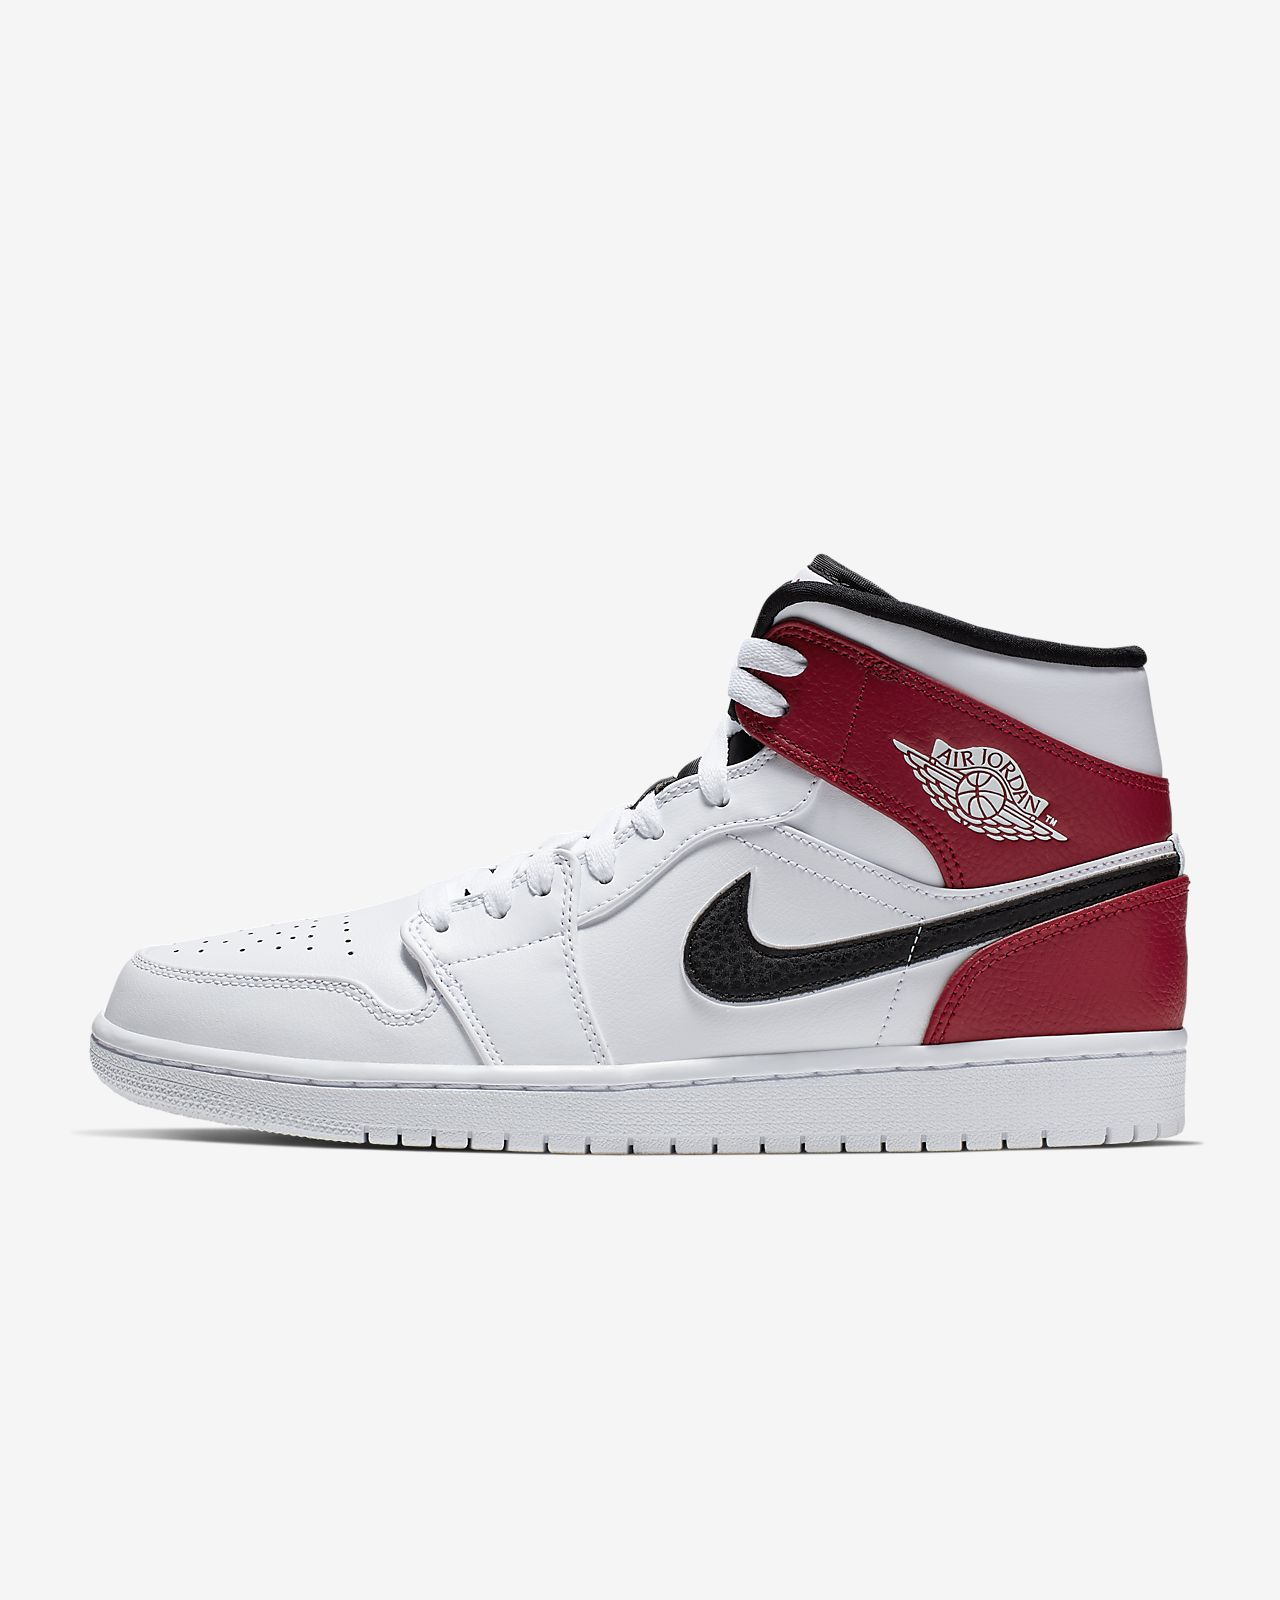 on sale 72bd8 441fd Men s Shoe. Air Jordan 1 Mid